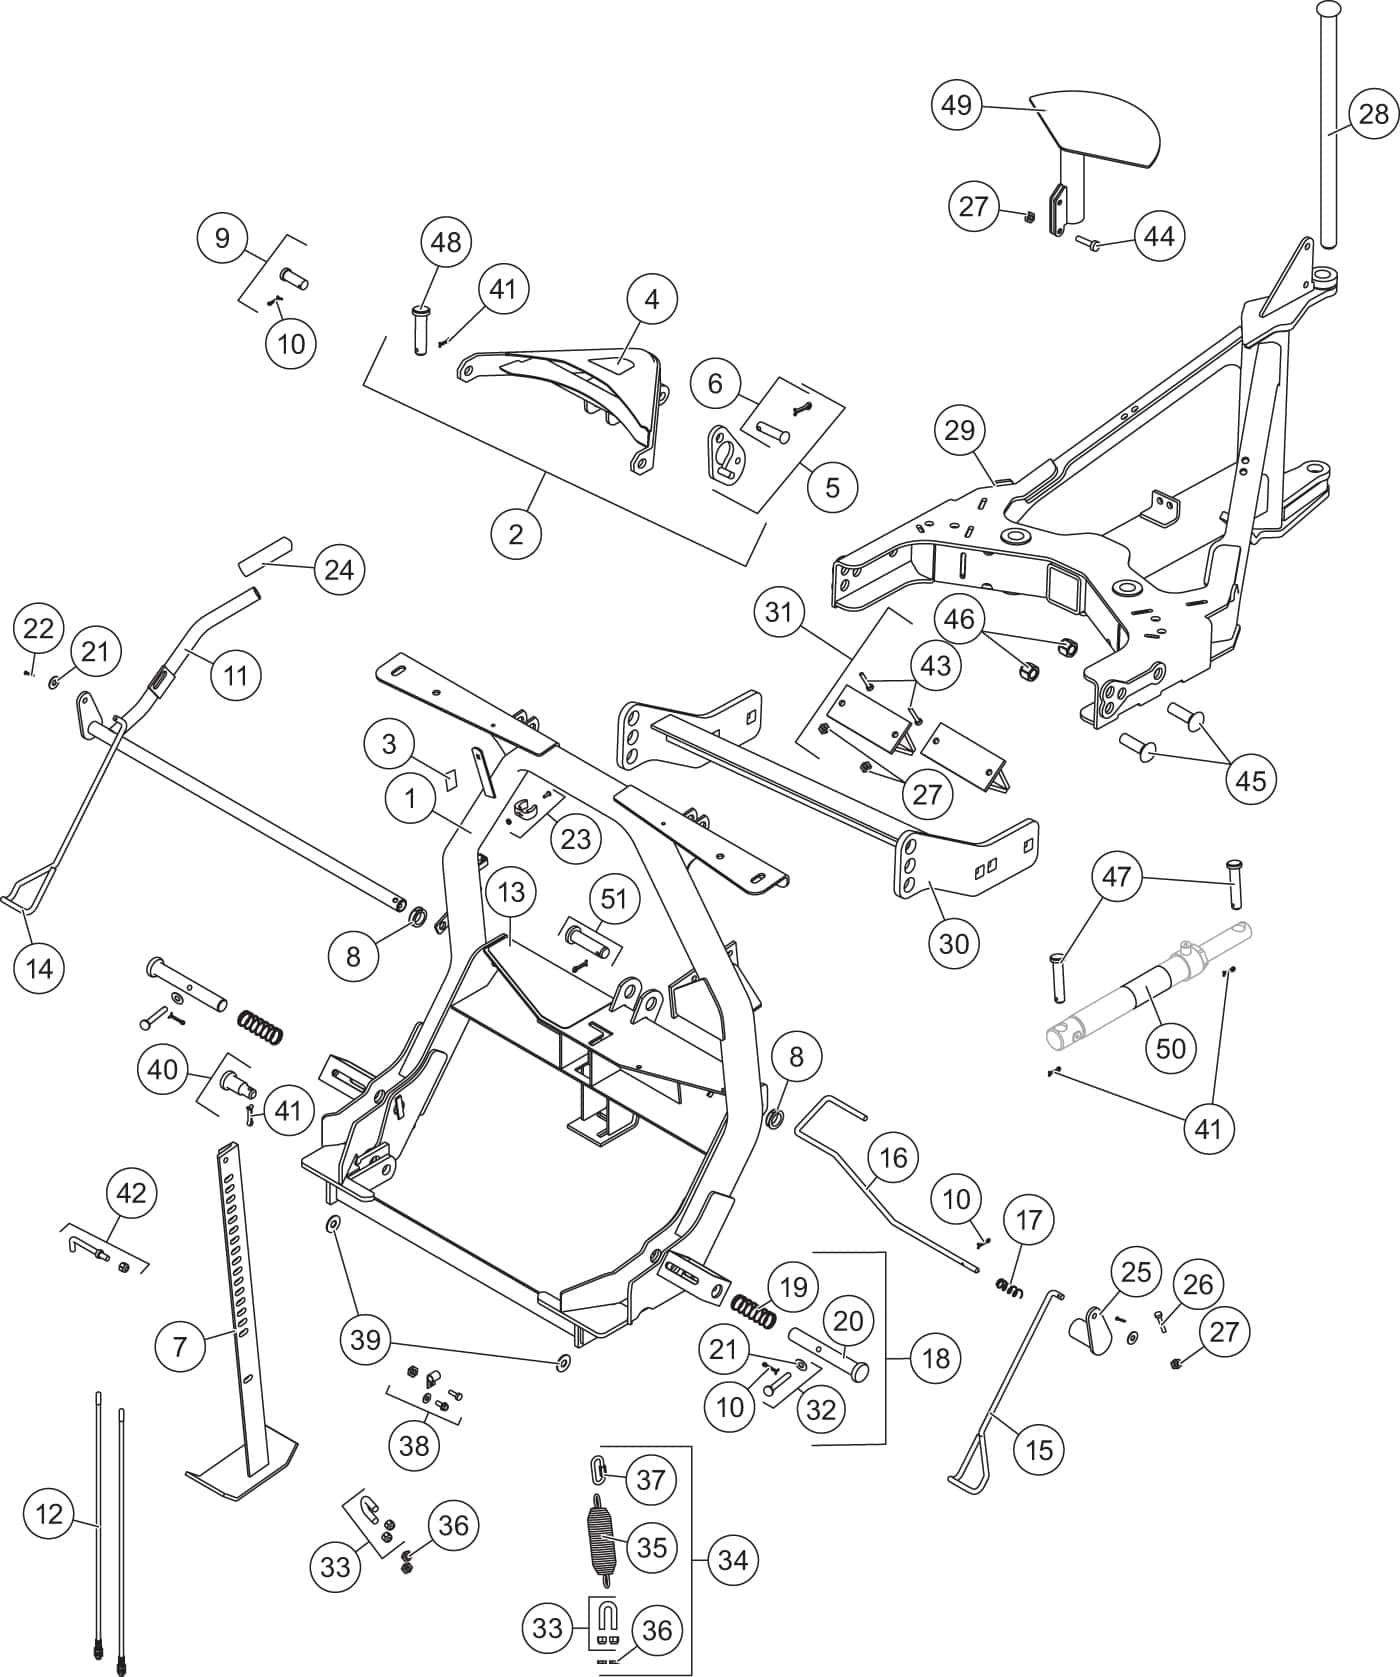 Msd 6425 wiring harness wiring diagram and fuse box